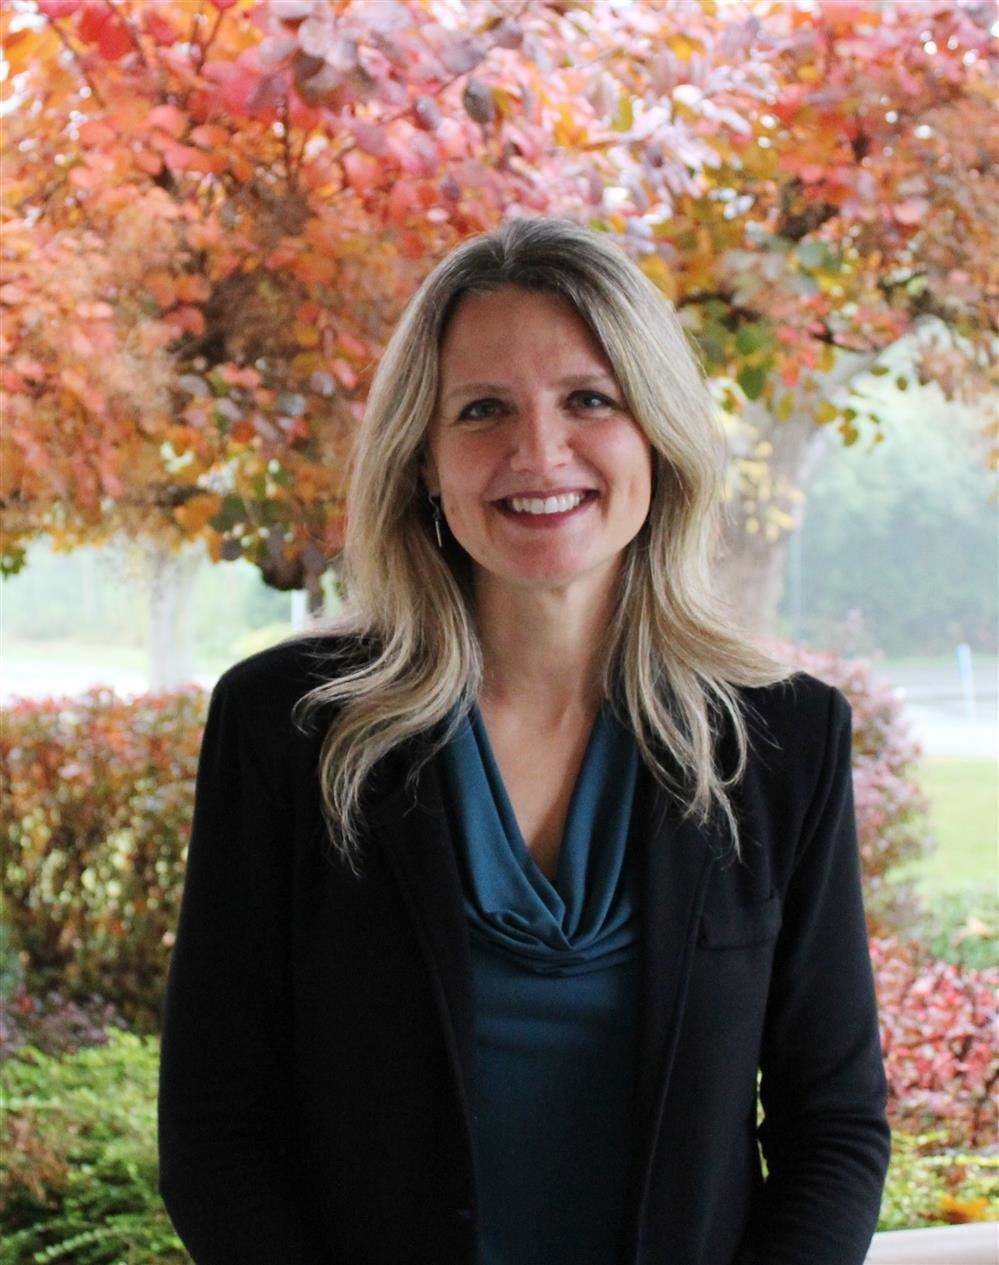 Christina Hulet selected as School Board Director for Bainbridge  Island School District